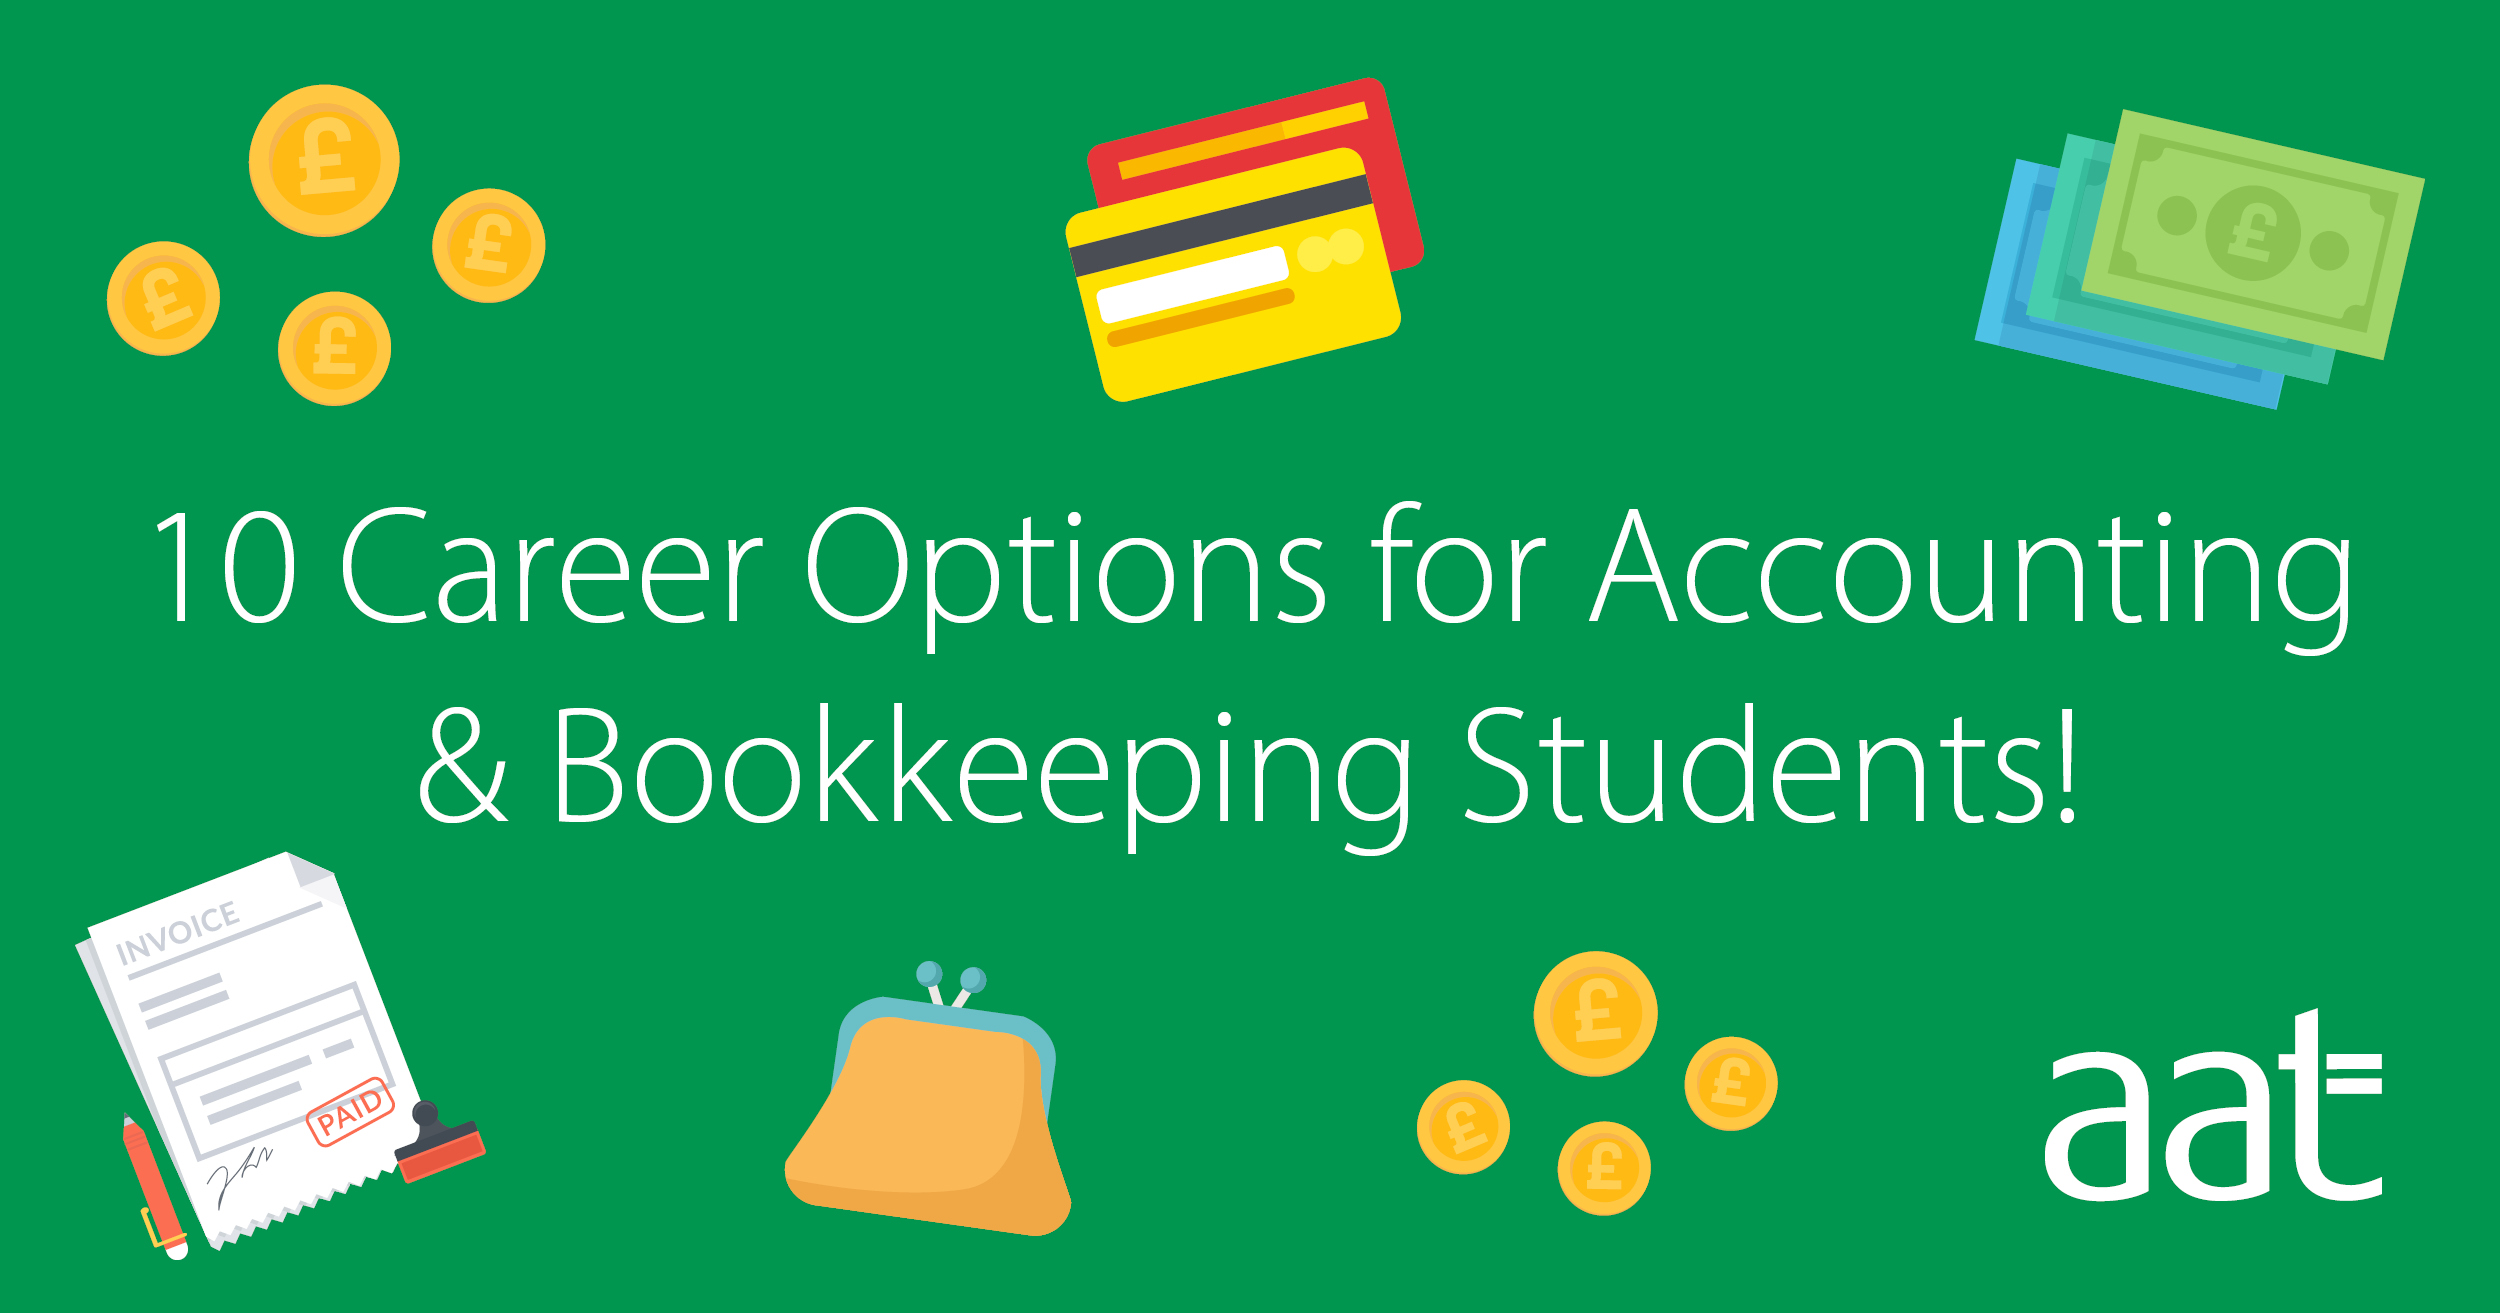 10 Career Options for Accounting and Bookkeeping Students